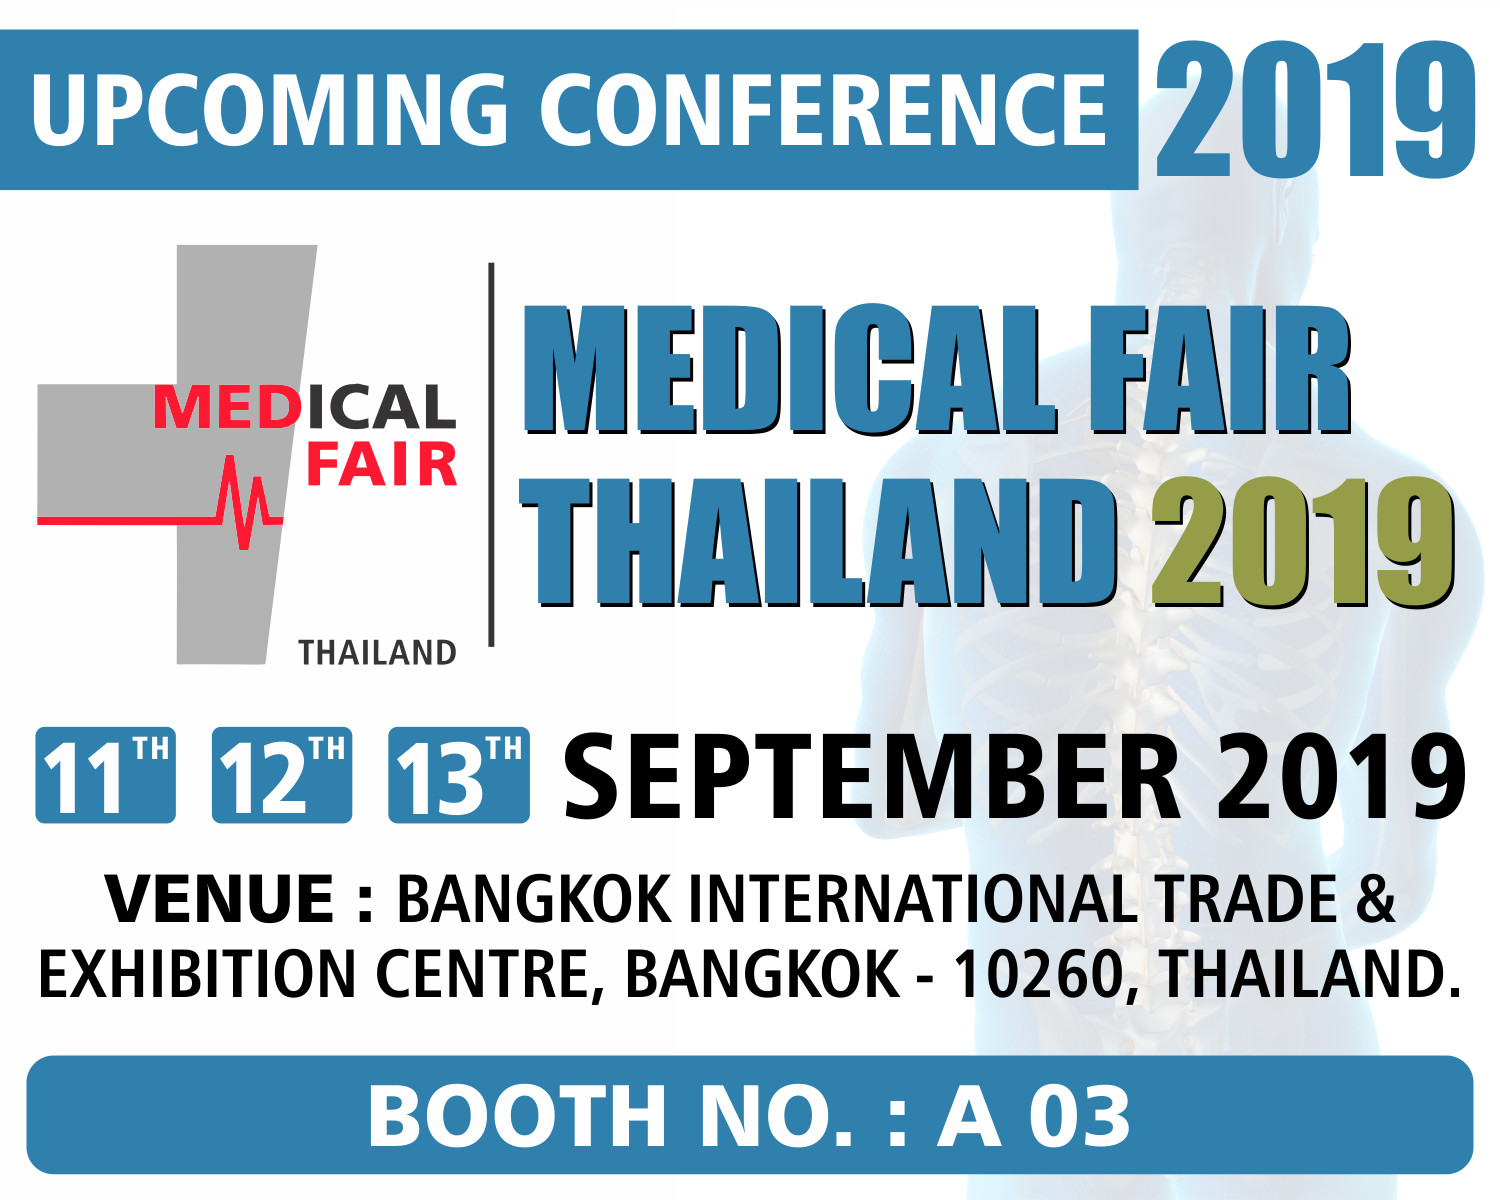 MEDICAL FAIR THAILAND - 2019